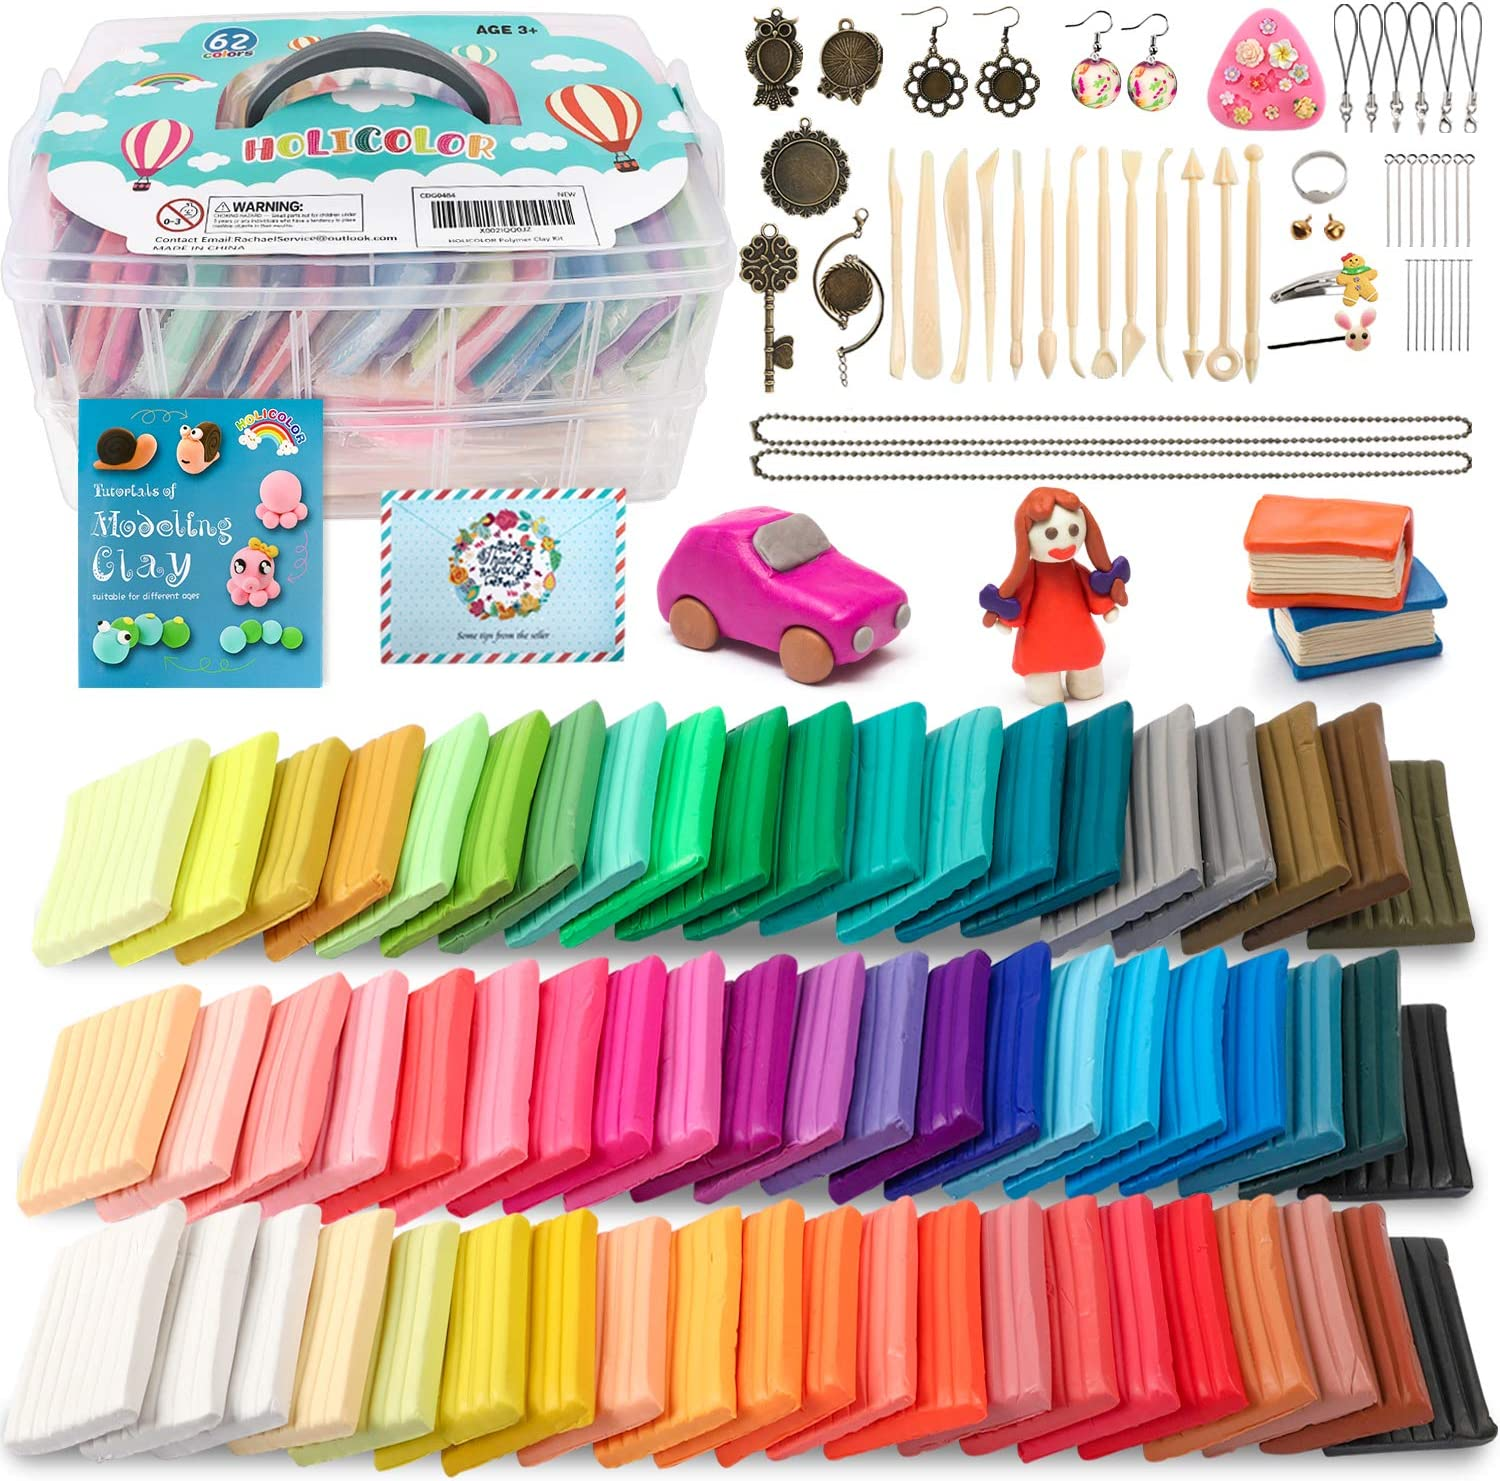 HOLICOLOR 62 Colors (1.4 Ounce Per Pack) Polymer Clay Includes Extra 1 White and 1 Black Oven Bake Clay with Accessories and 14 Sculpting Tools, Modeling Clay for Kids, Beginners and Expert Artisans